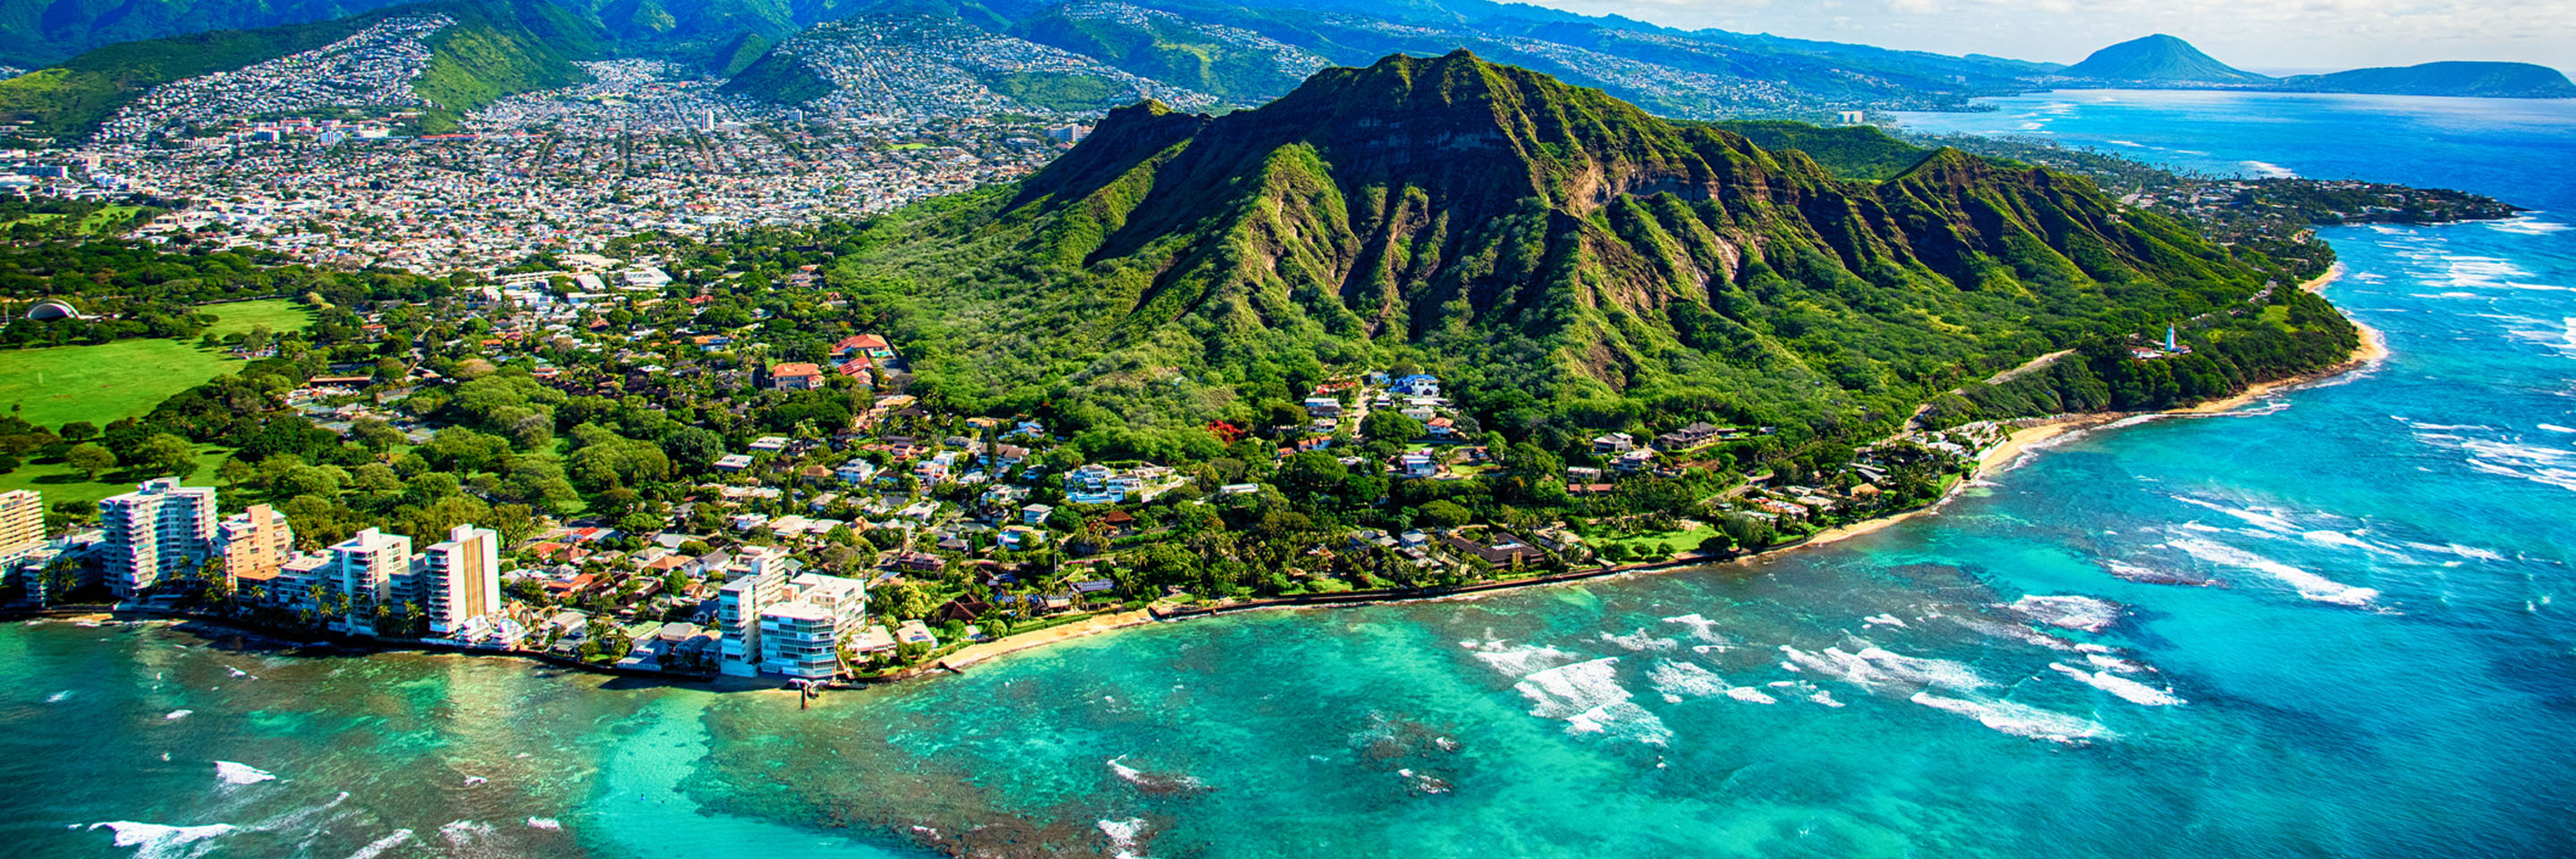 Hawaii guided tours